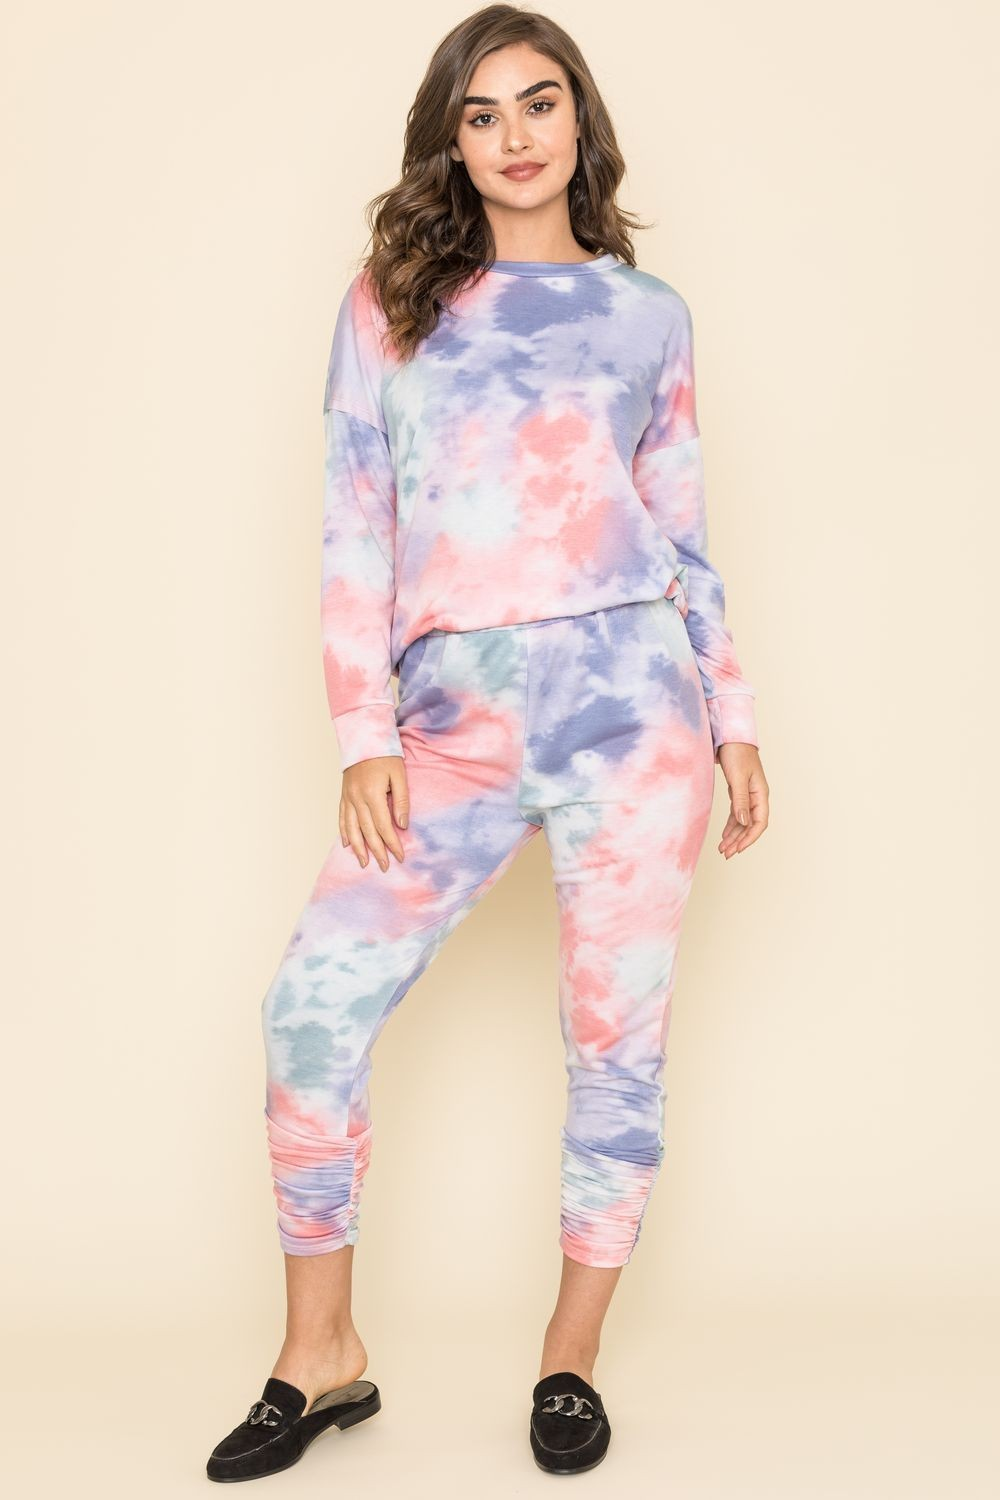 Cotton Candy Tie Dye Top & Jogger Set